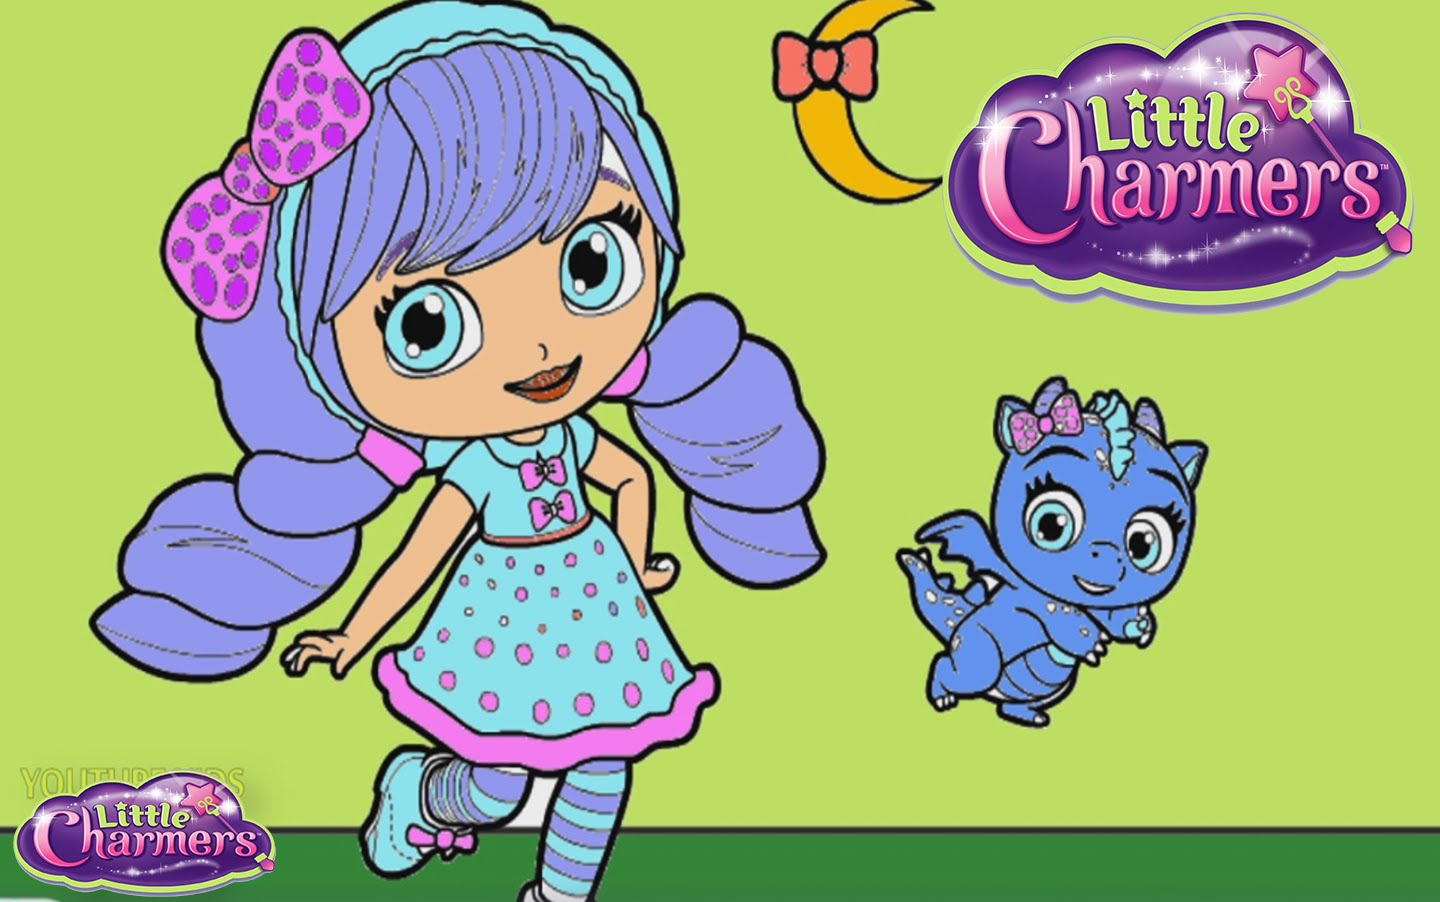 LITTLE CHARMERS Nickelodeon Little Charmers Color Episode.